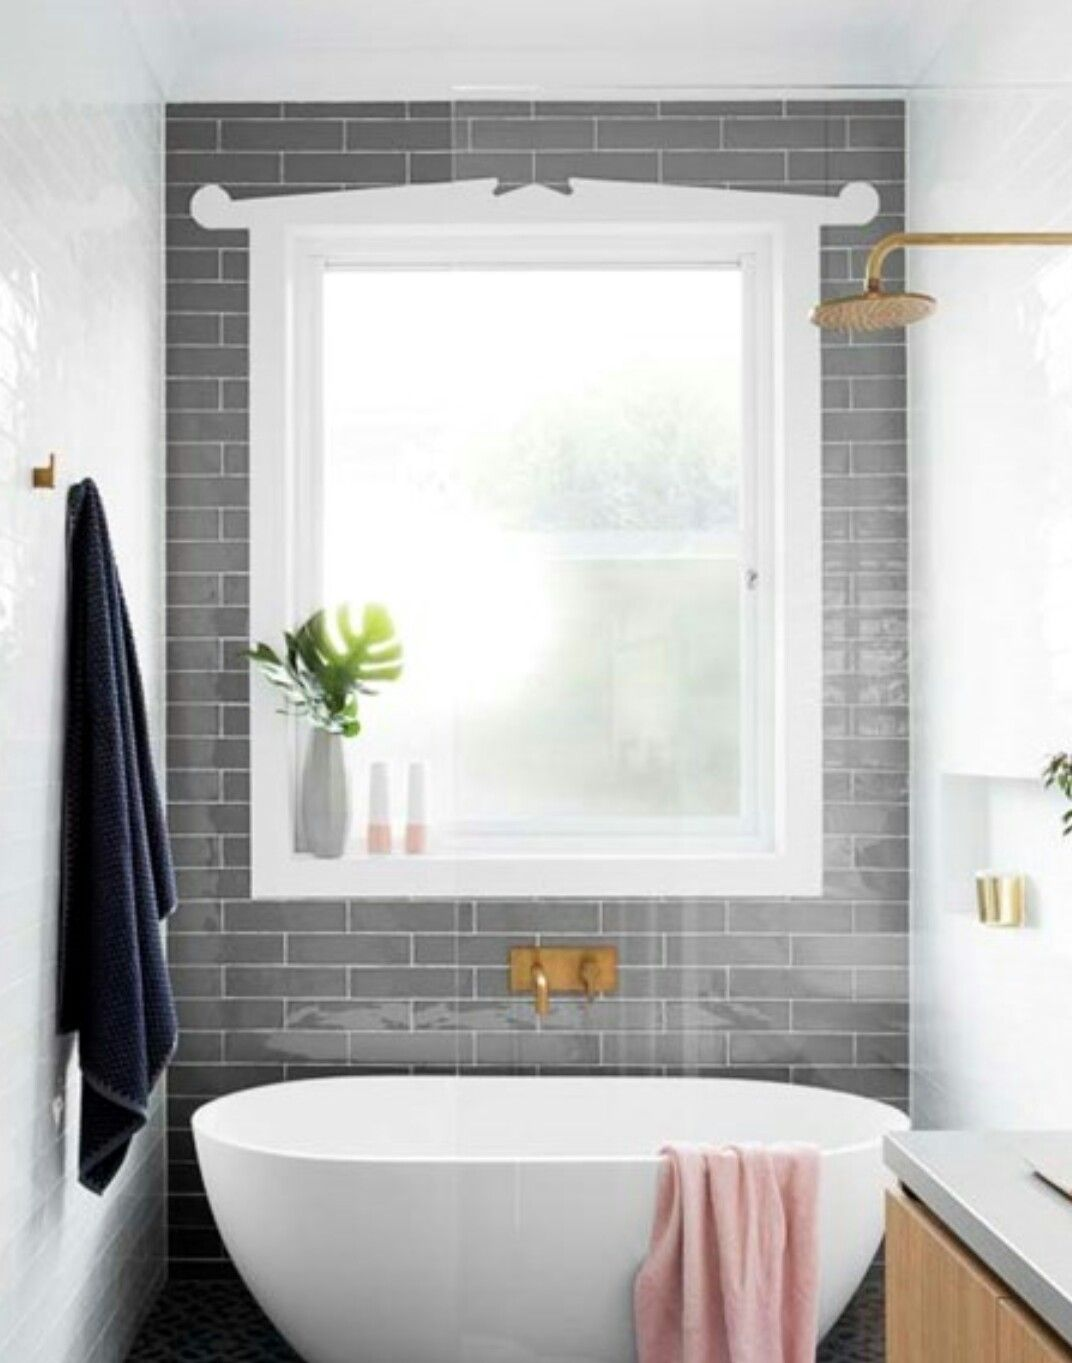 Grey subway feature tiles around bathroom window | Bathroom ...